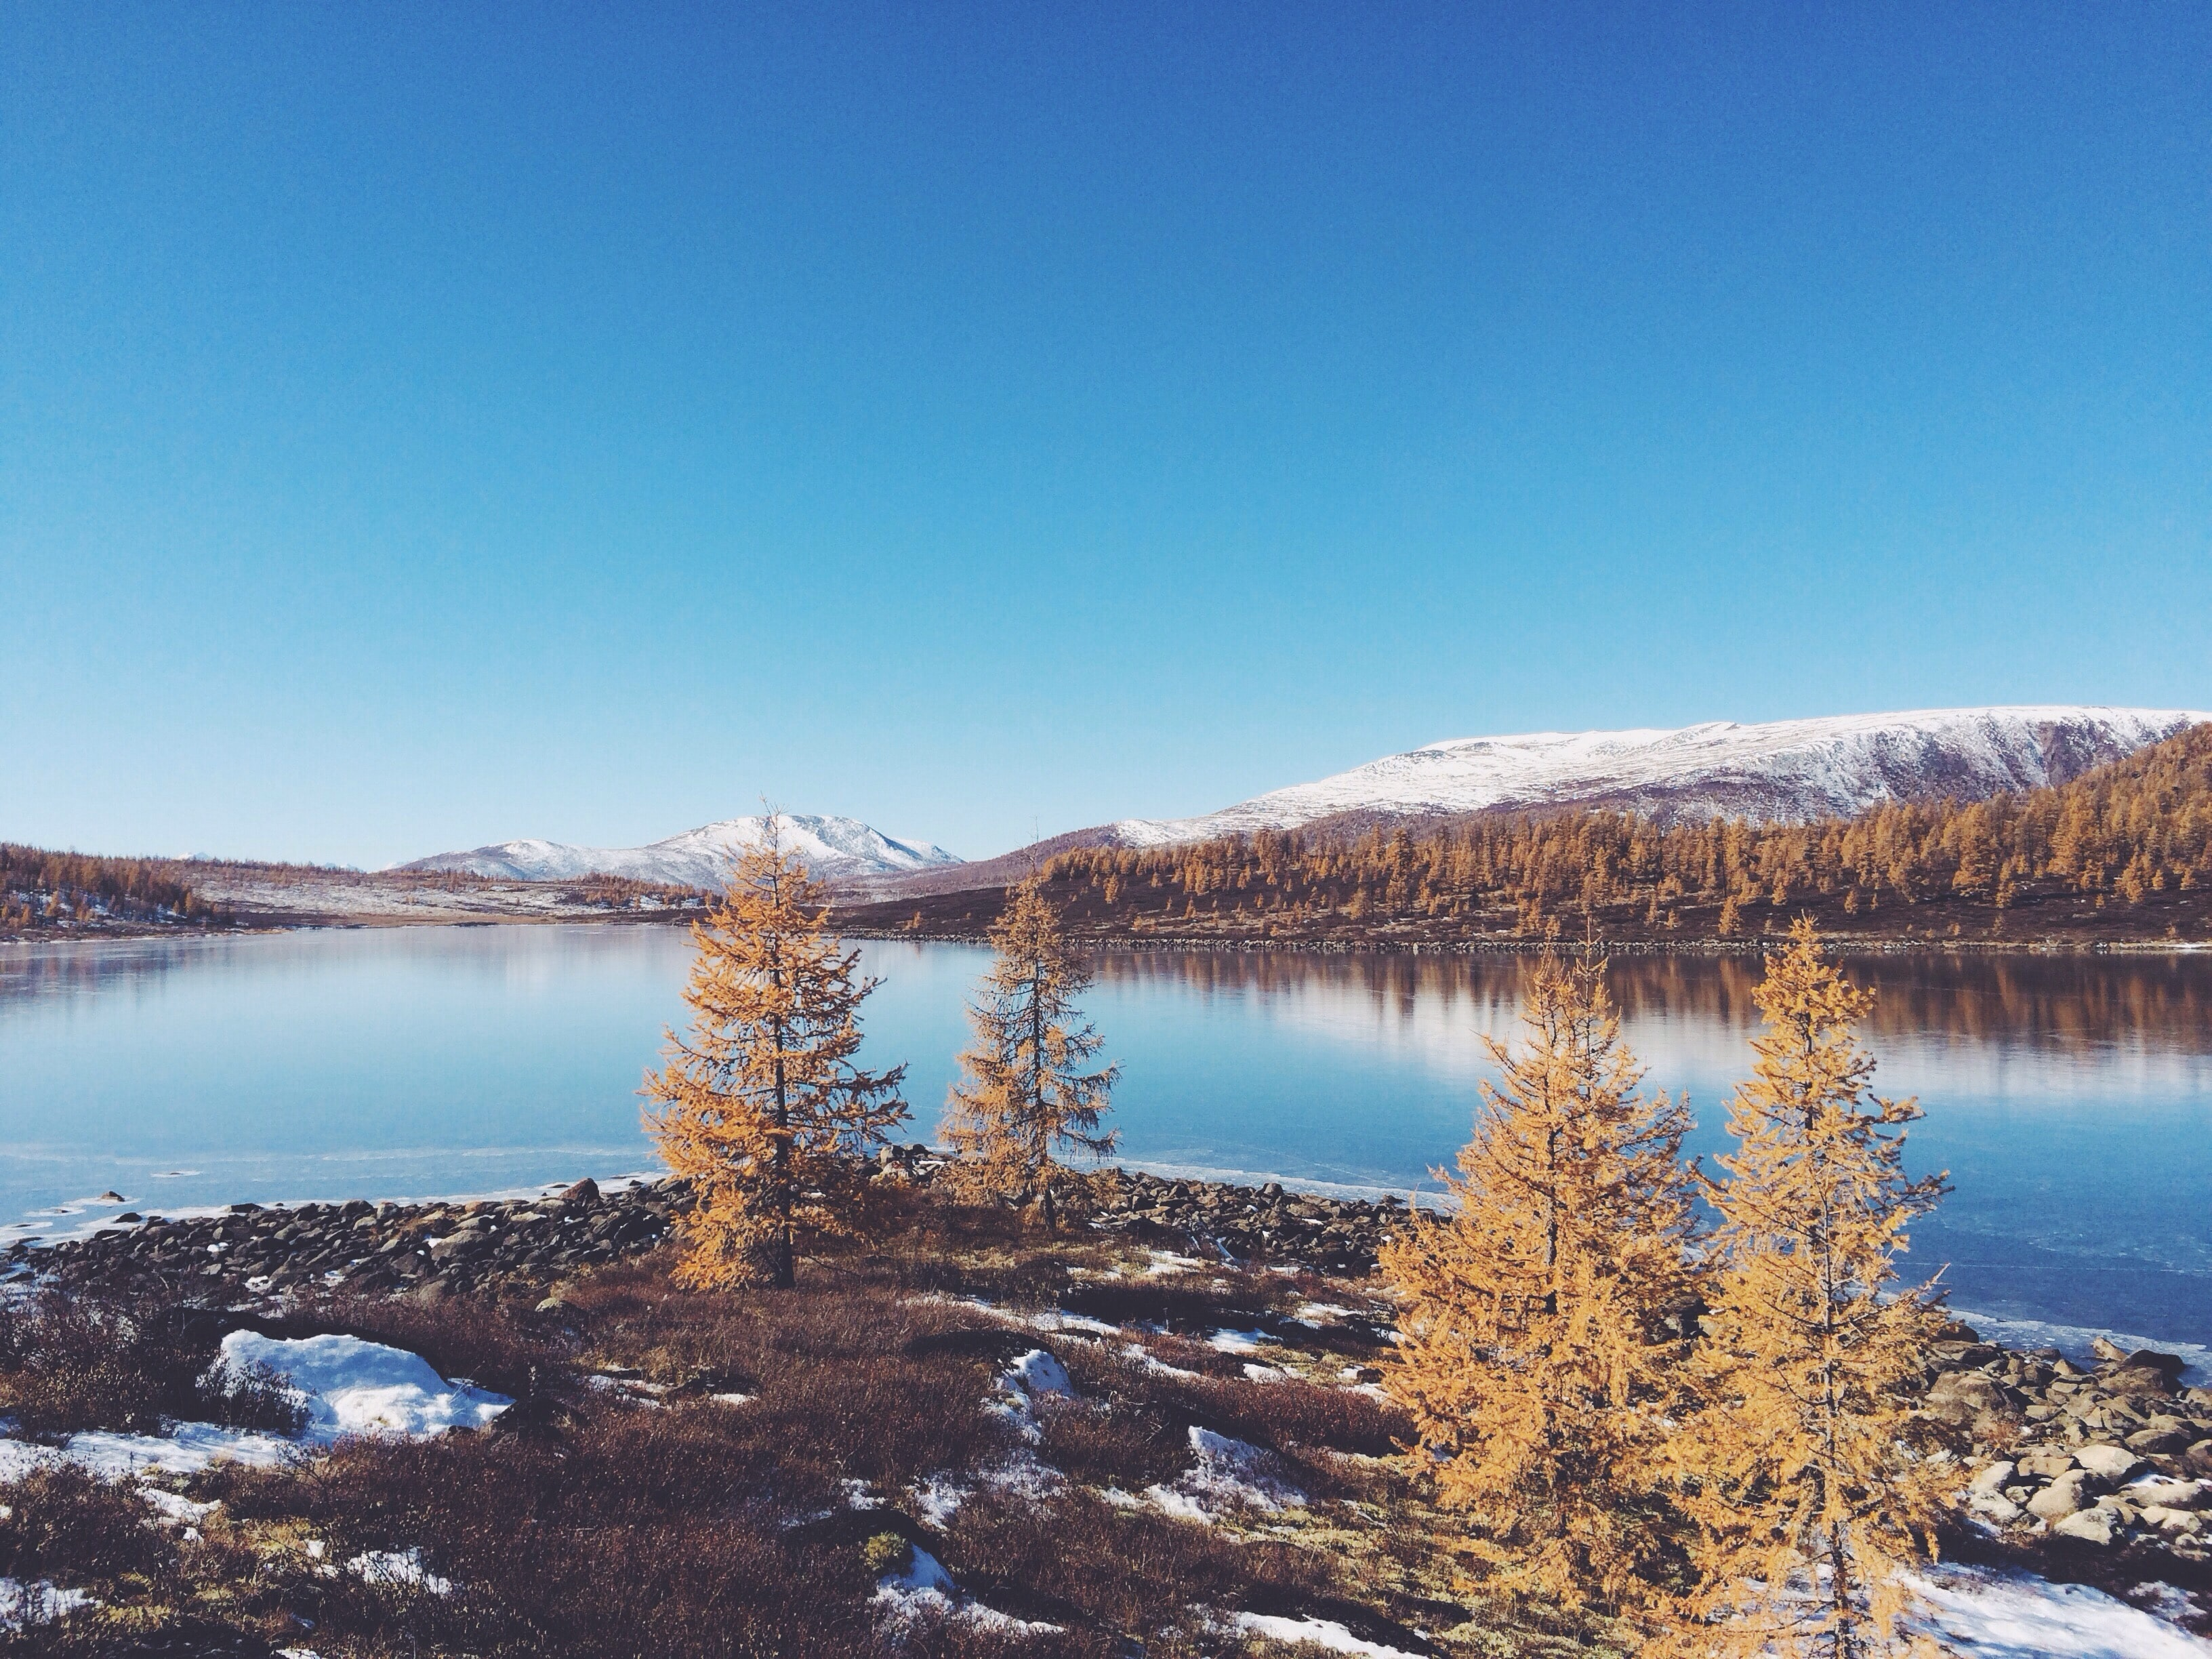 The calm landscape in autumn of trees and snowy mountains across the lake at Buryatia